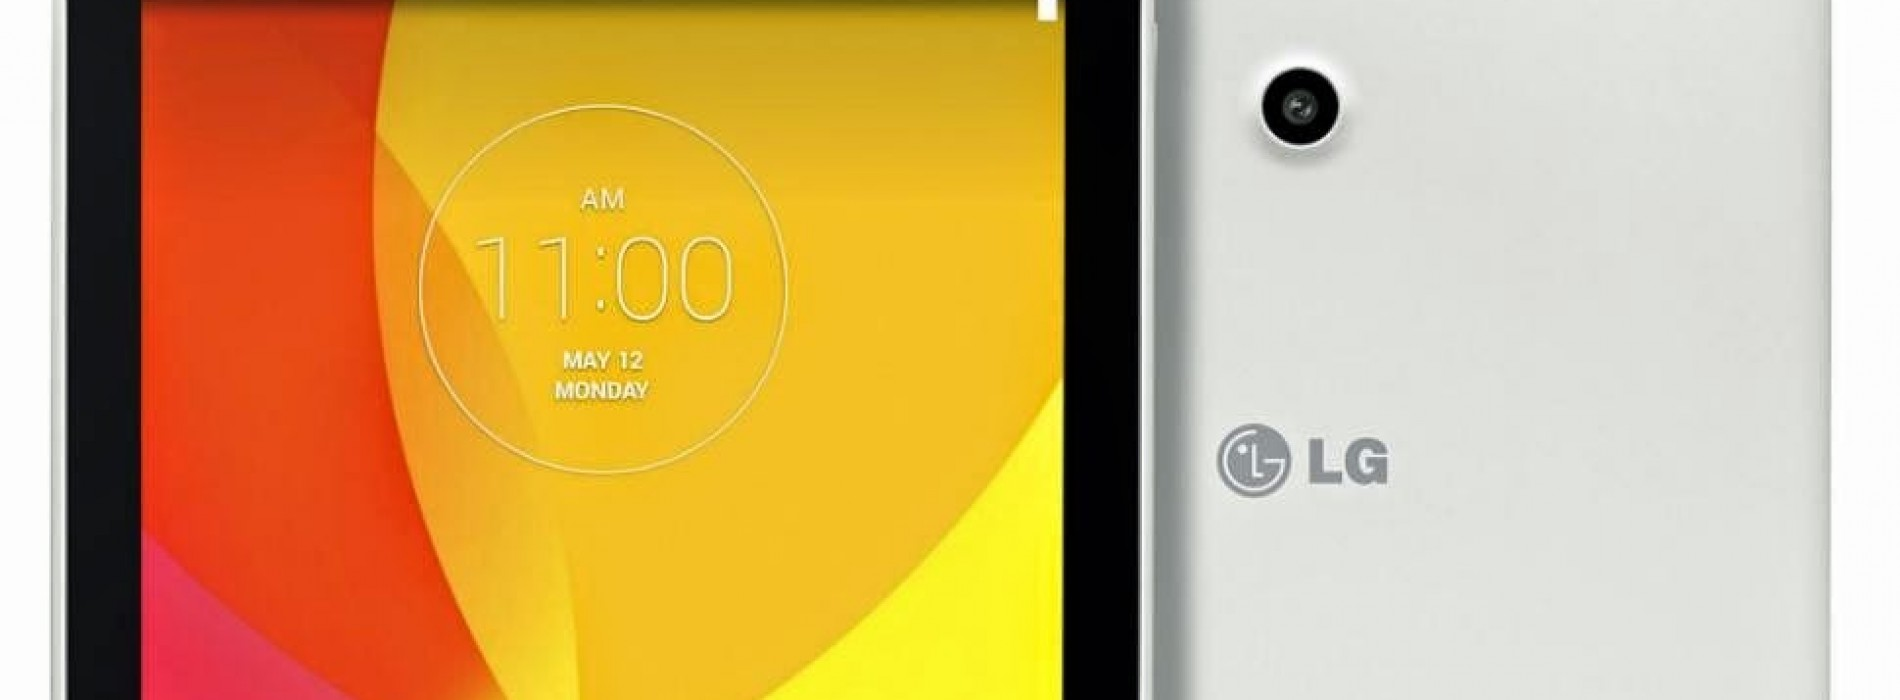 LG releases the G Pad 10.1 worldwide